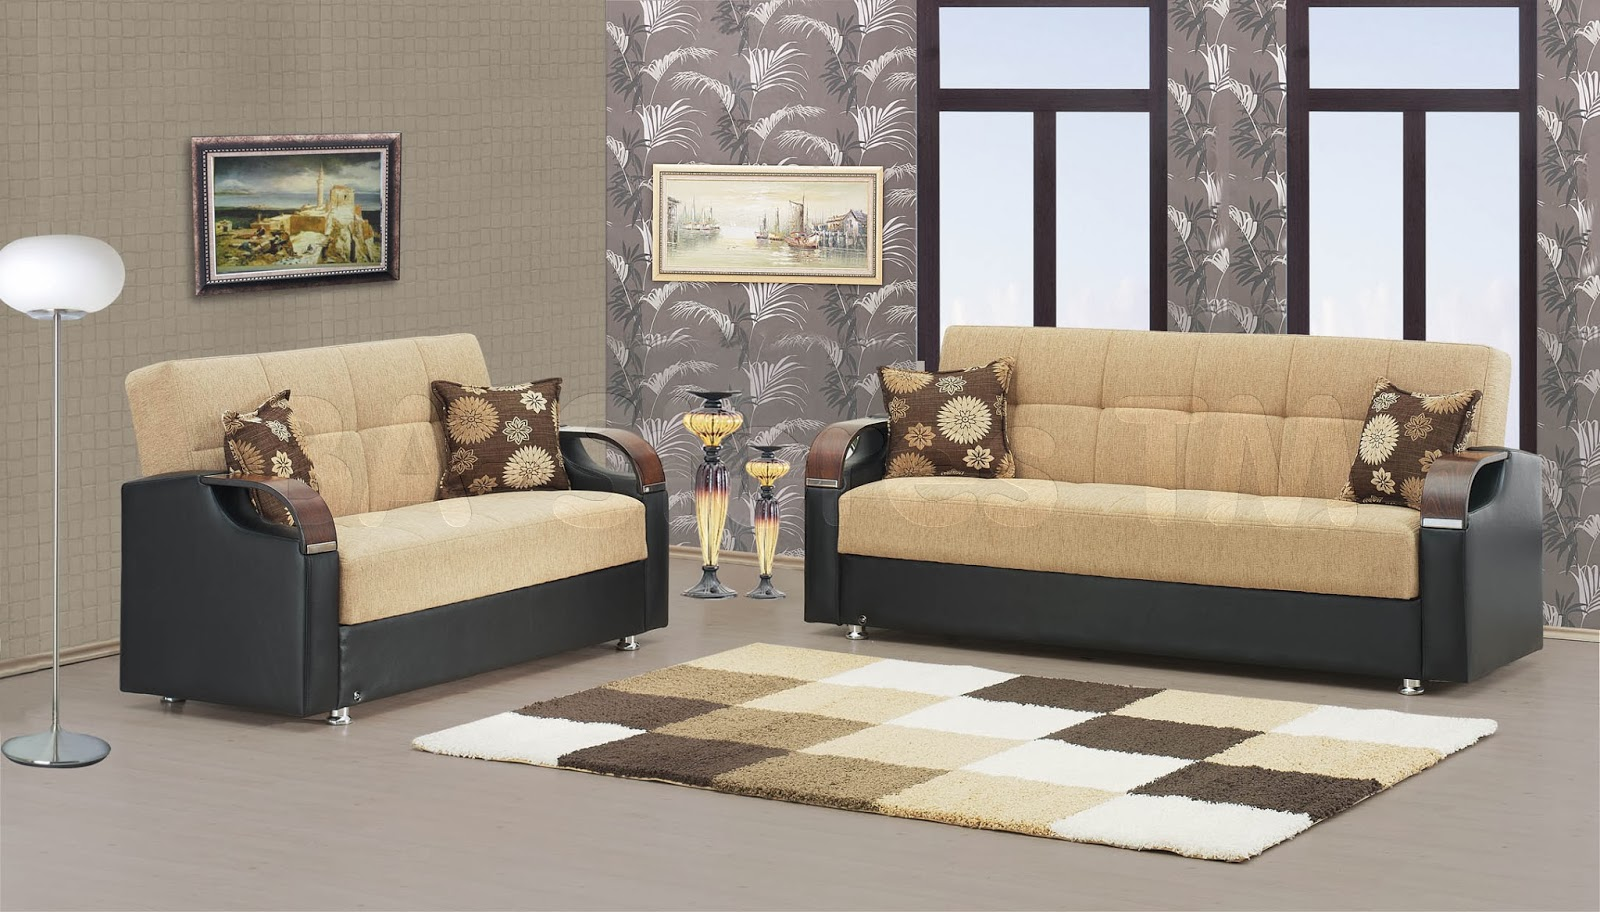 New fashion in sofa set design 2014 for Living room set design